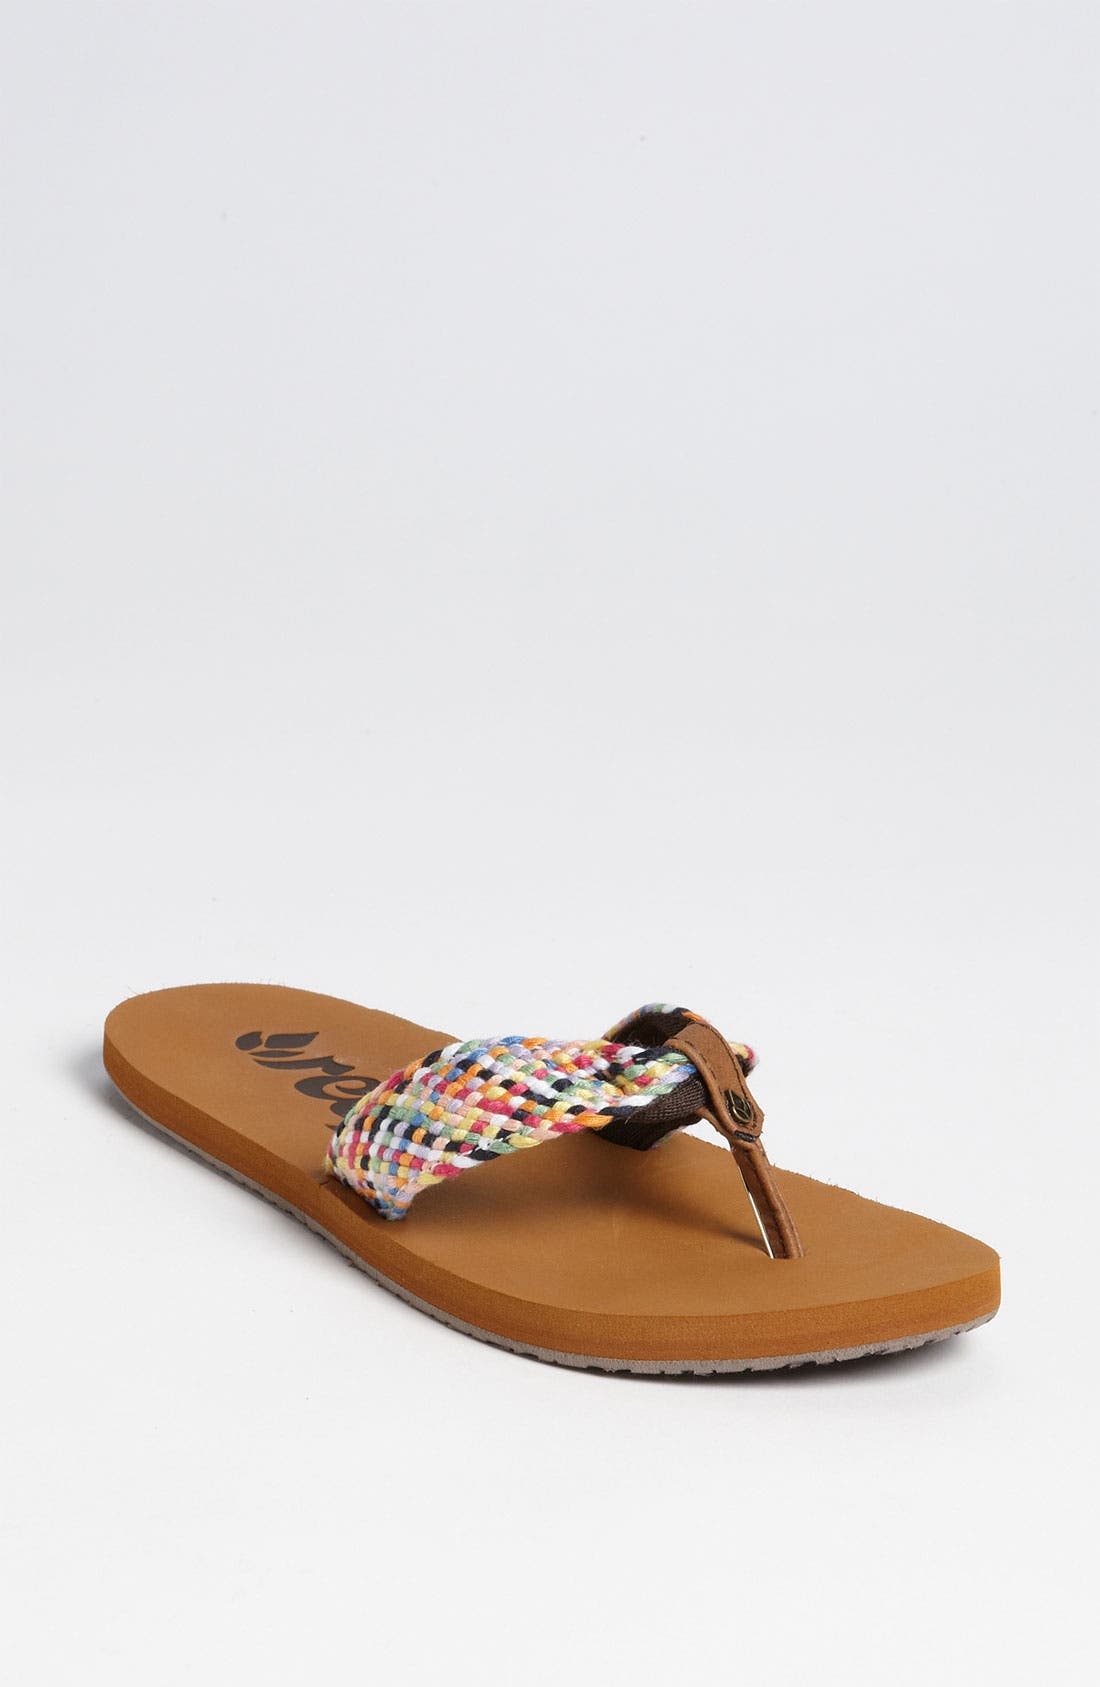 Alternate Image 1 Selected - Reef 'Mallory' Flip Flop (Women)